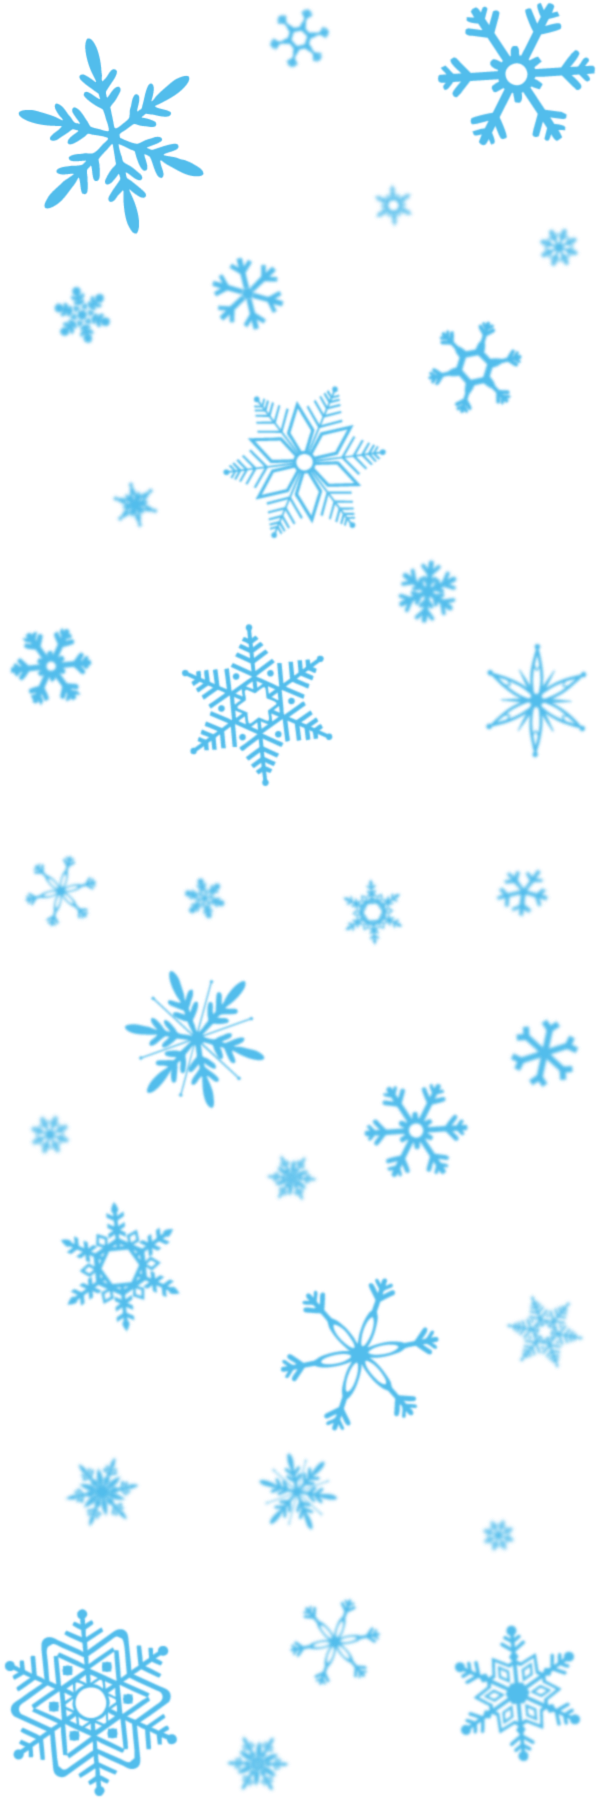 Crystal snowflake clipart clip art library stock Snowflakes Transparent PNG Pictures - Free Icons and PNG Backgrounds clip art library stock